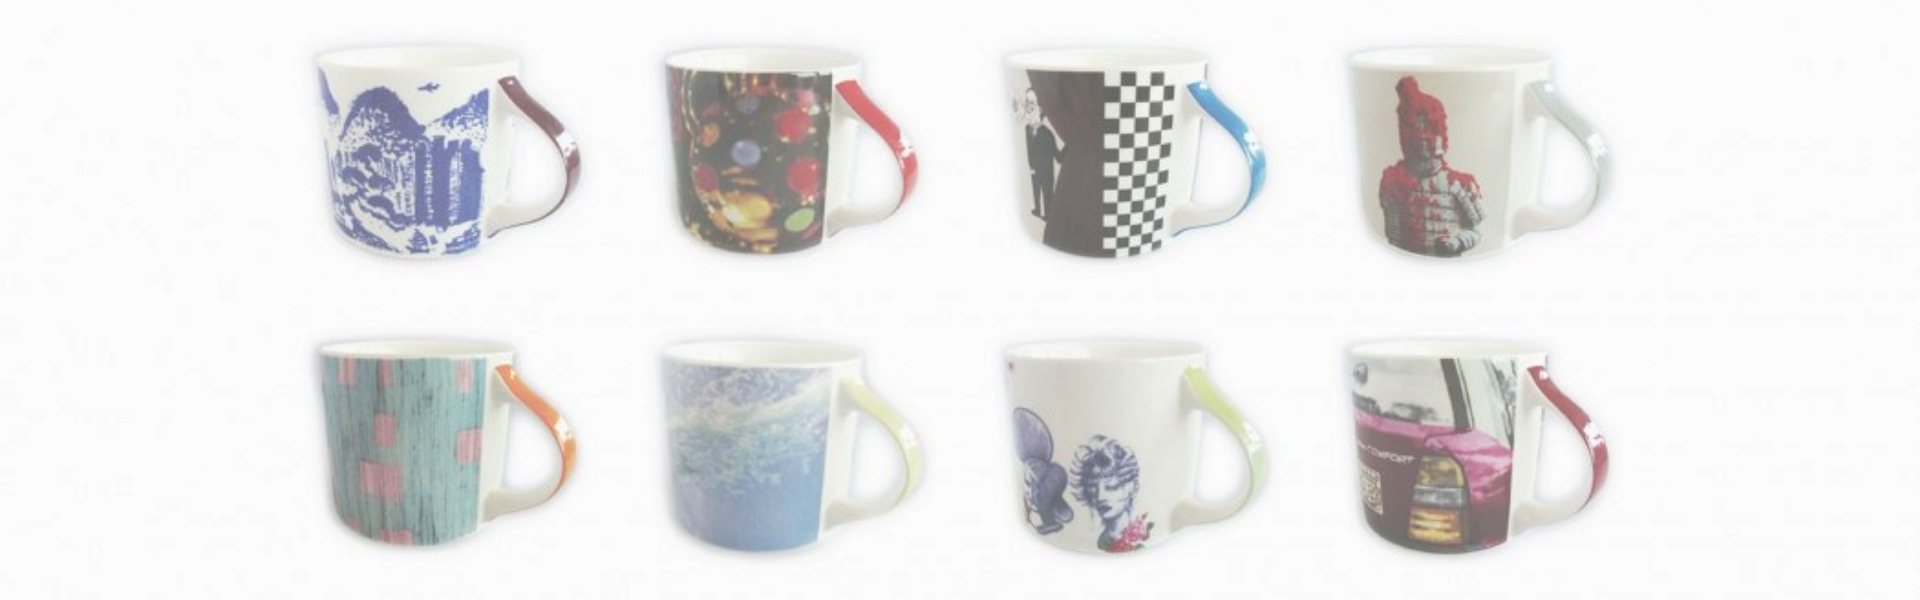 Limited Edition Mugs